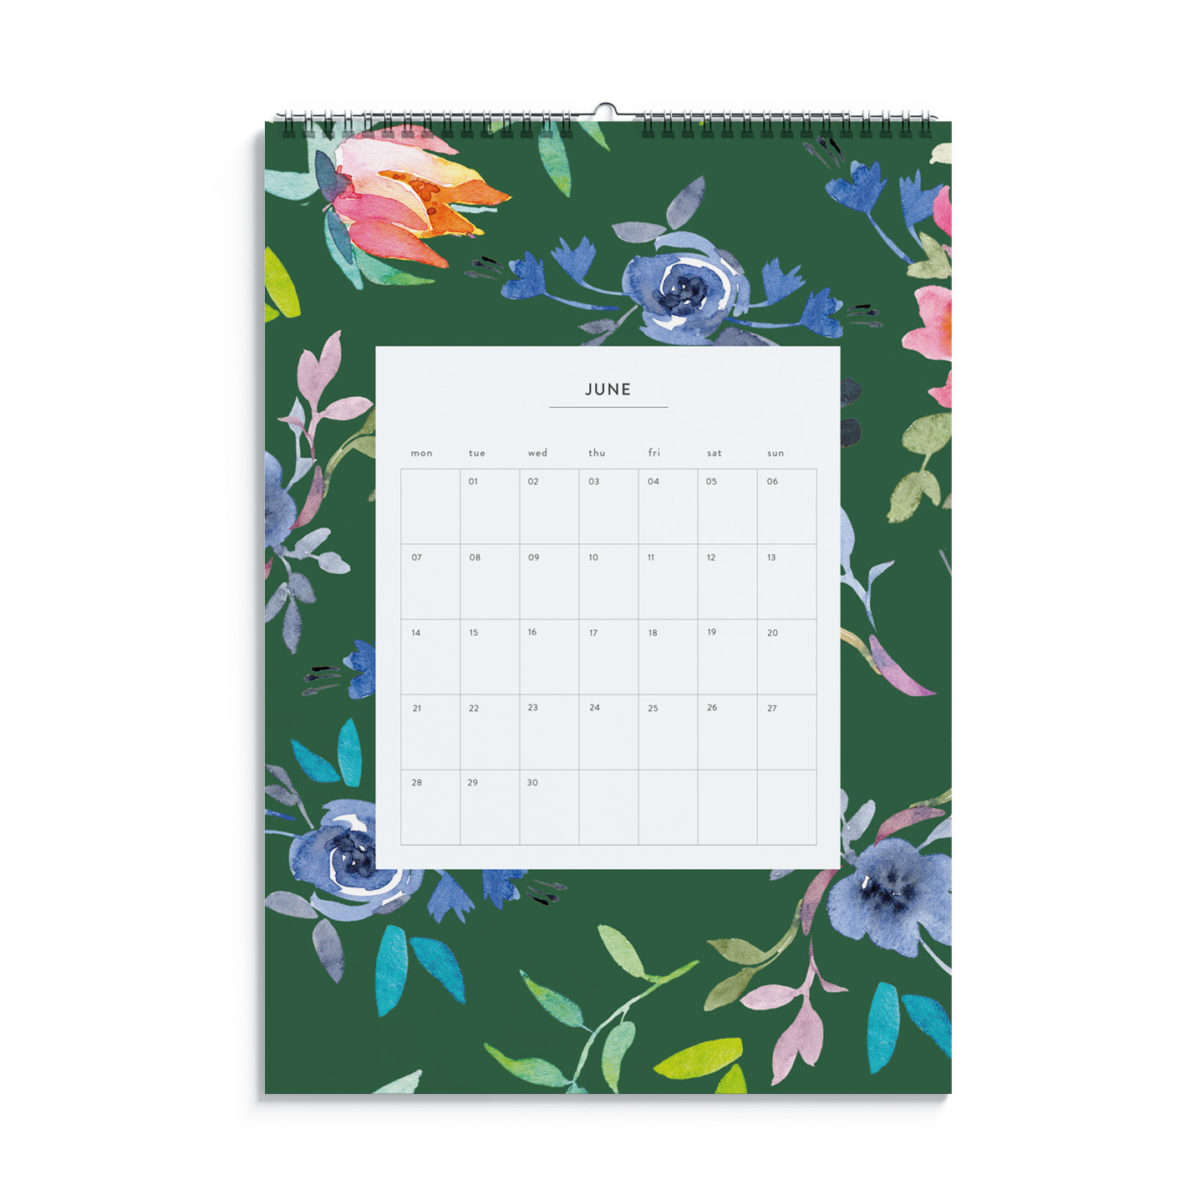 Watercolour Flowers 2021 Monthly Wall Calendar